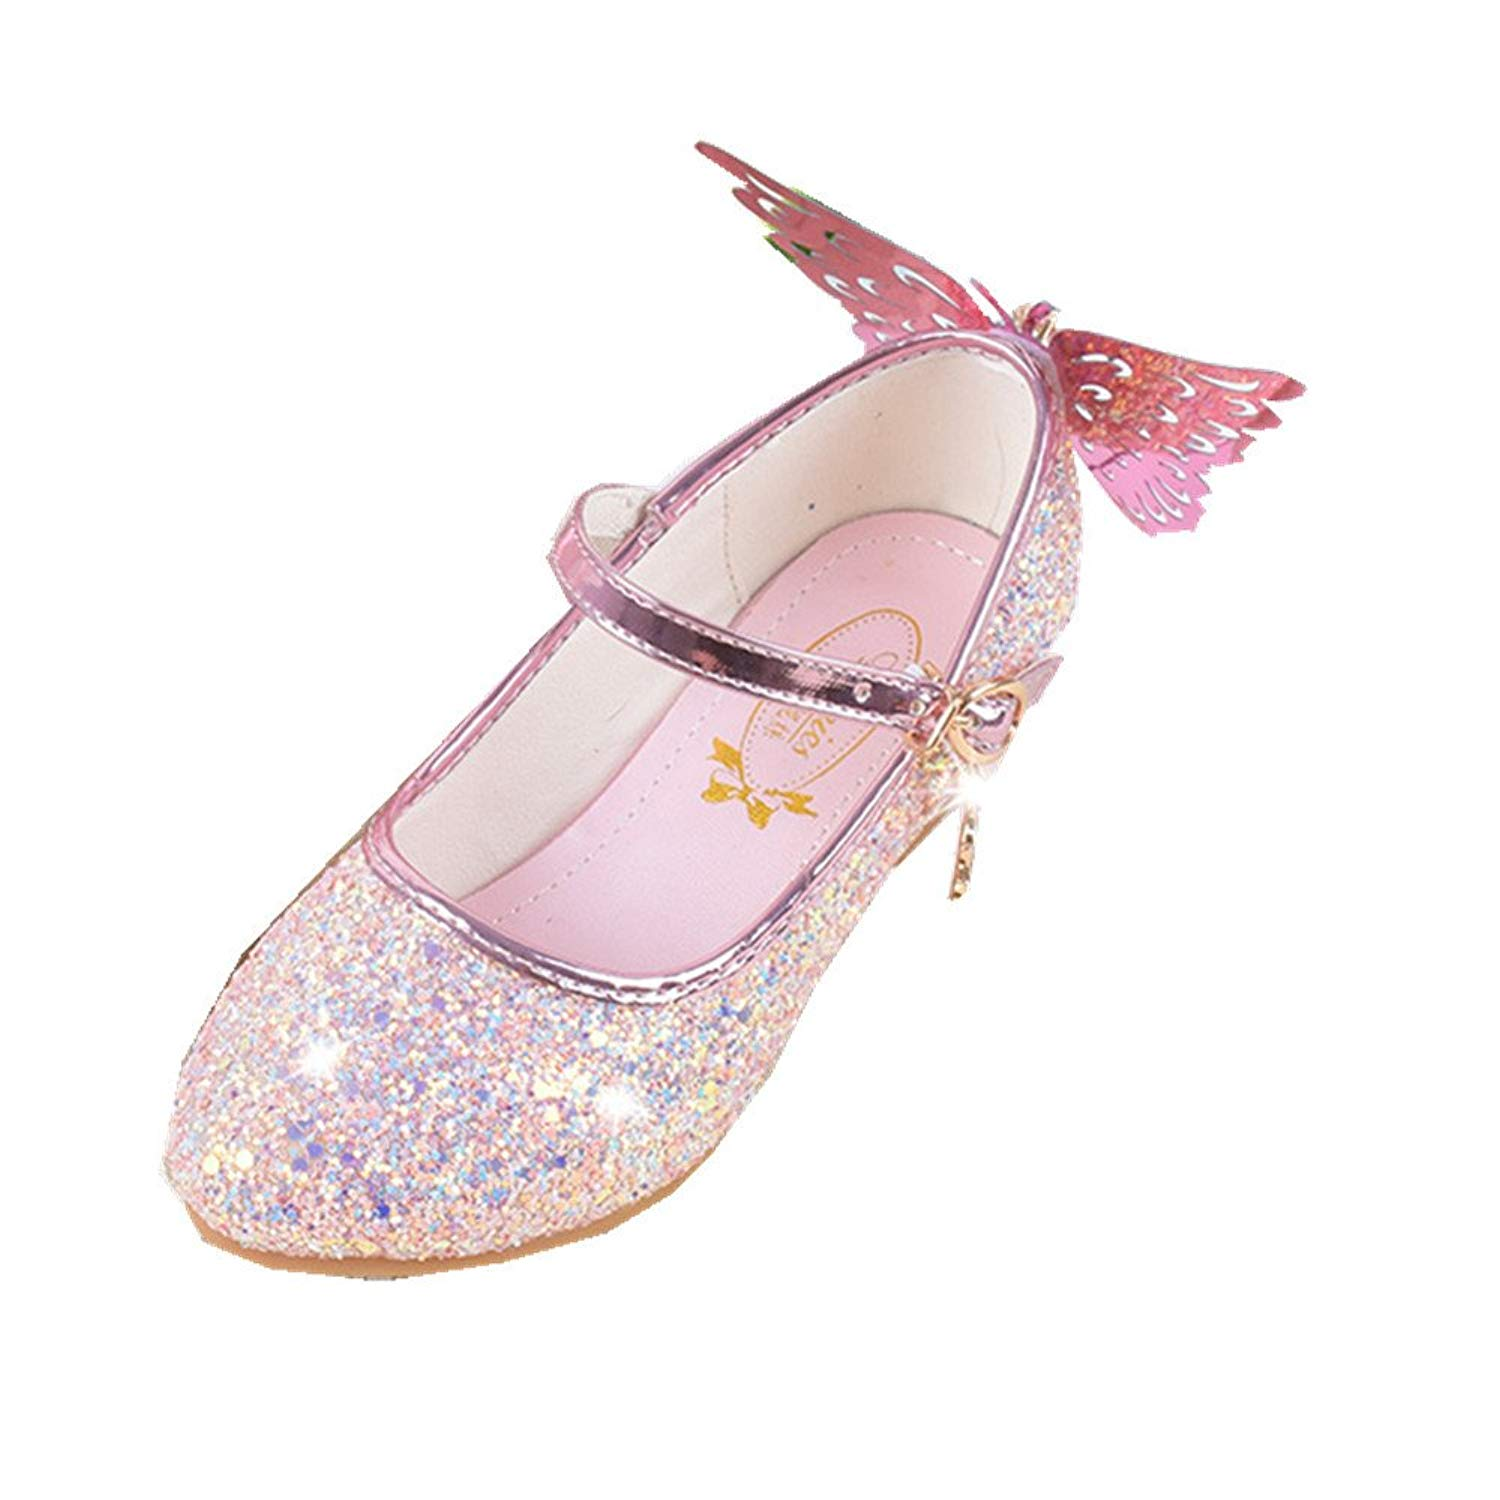 Smart.A New Children's Shoes Girls Cool Princess Shoes Girls Casual Shoes